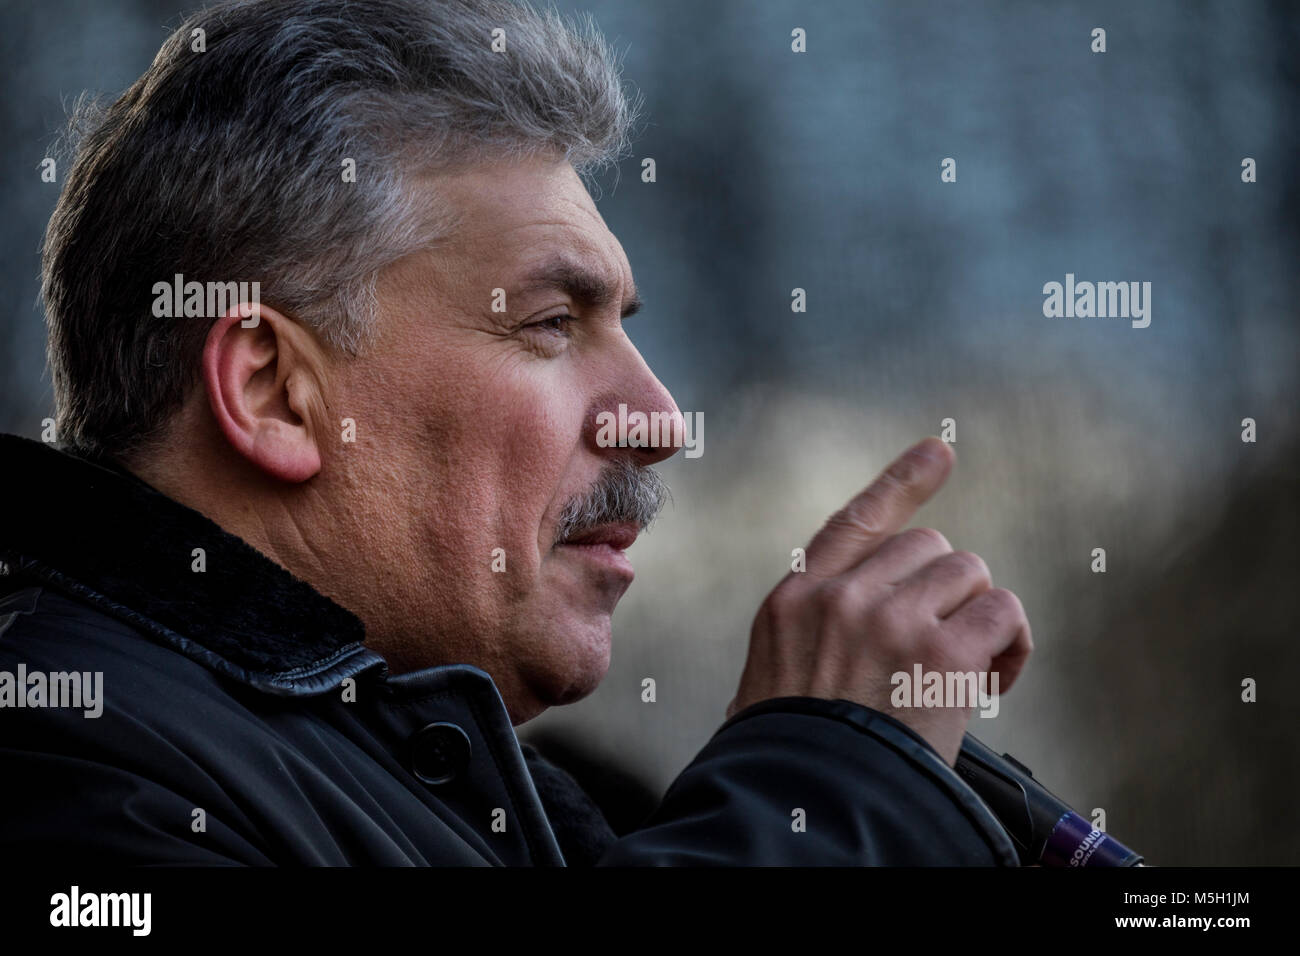 Moscow, Russia. 23rd Feb, 2018. Pavel Grudinin, the presidential candidate for the Communist Party of the Russian - Stock Image